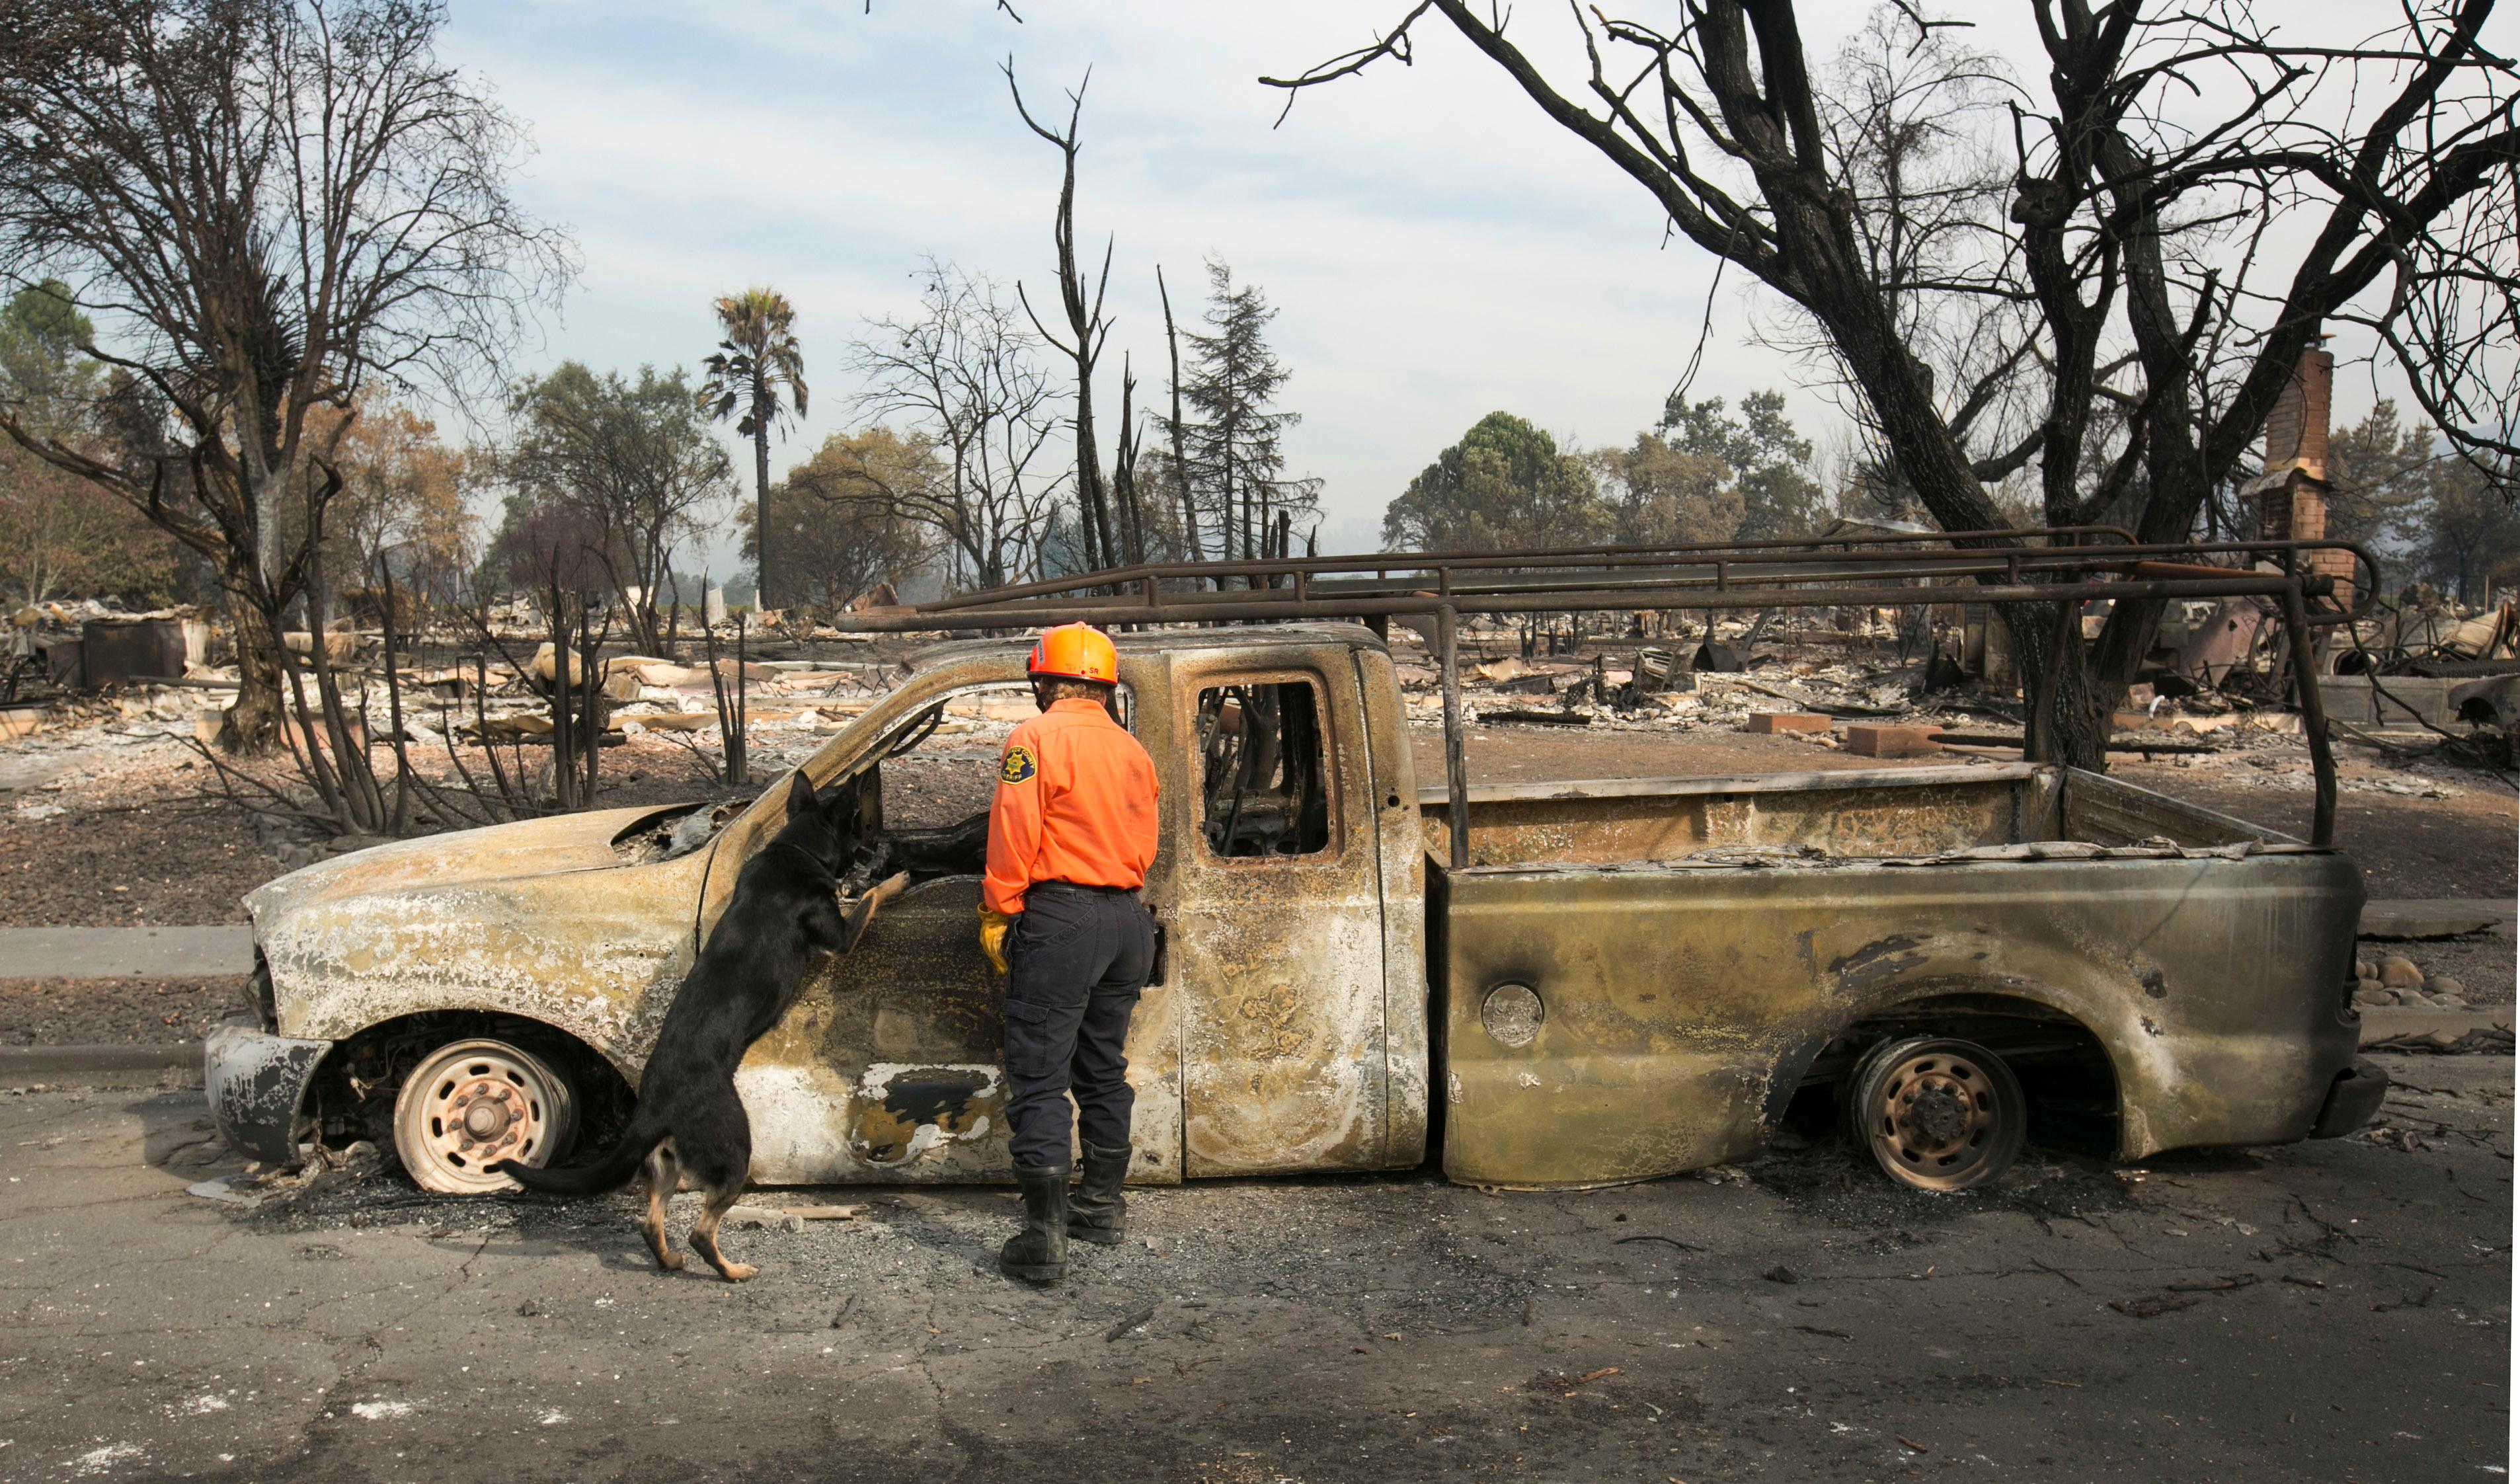 Shay Cook, of the Alameda County Sheriff's Office Search and Rescue team and her search dog, Zinka inspect a burned out pickup while searching the Coffey Park area Tuesday, Oct. 17, 2017, in Santa Rosa, Calif. A massive wildfire swept through the area last week destroying thousands of housing and business and taking the lives of more than two dozen people.(AP Photo/Rich Pedroncelli)